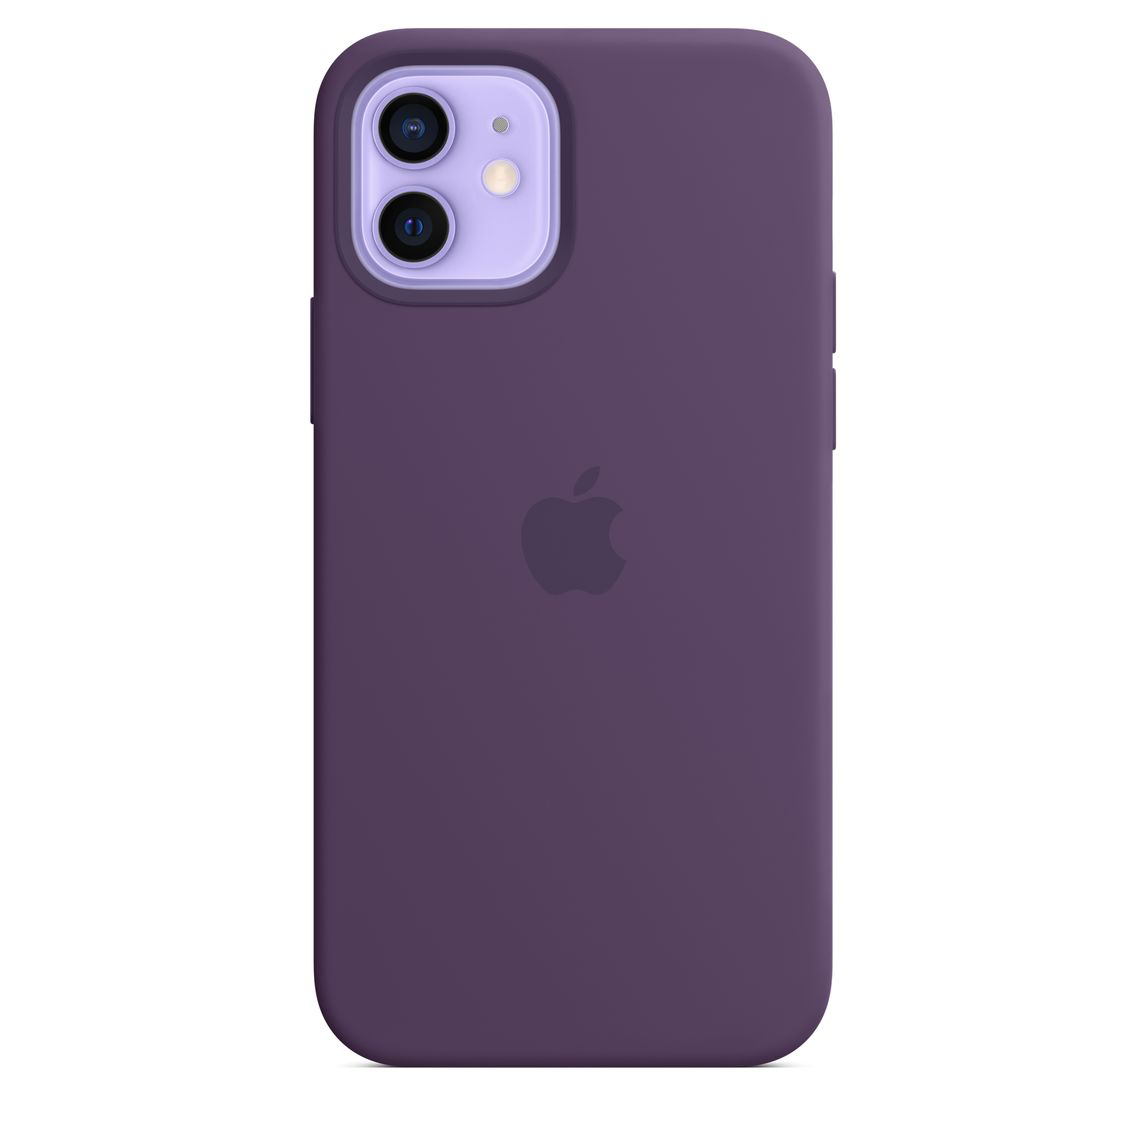 Apple iPhone 12 Pro Max Silicone Case with MagSafe Amethyst